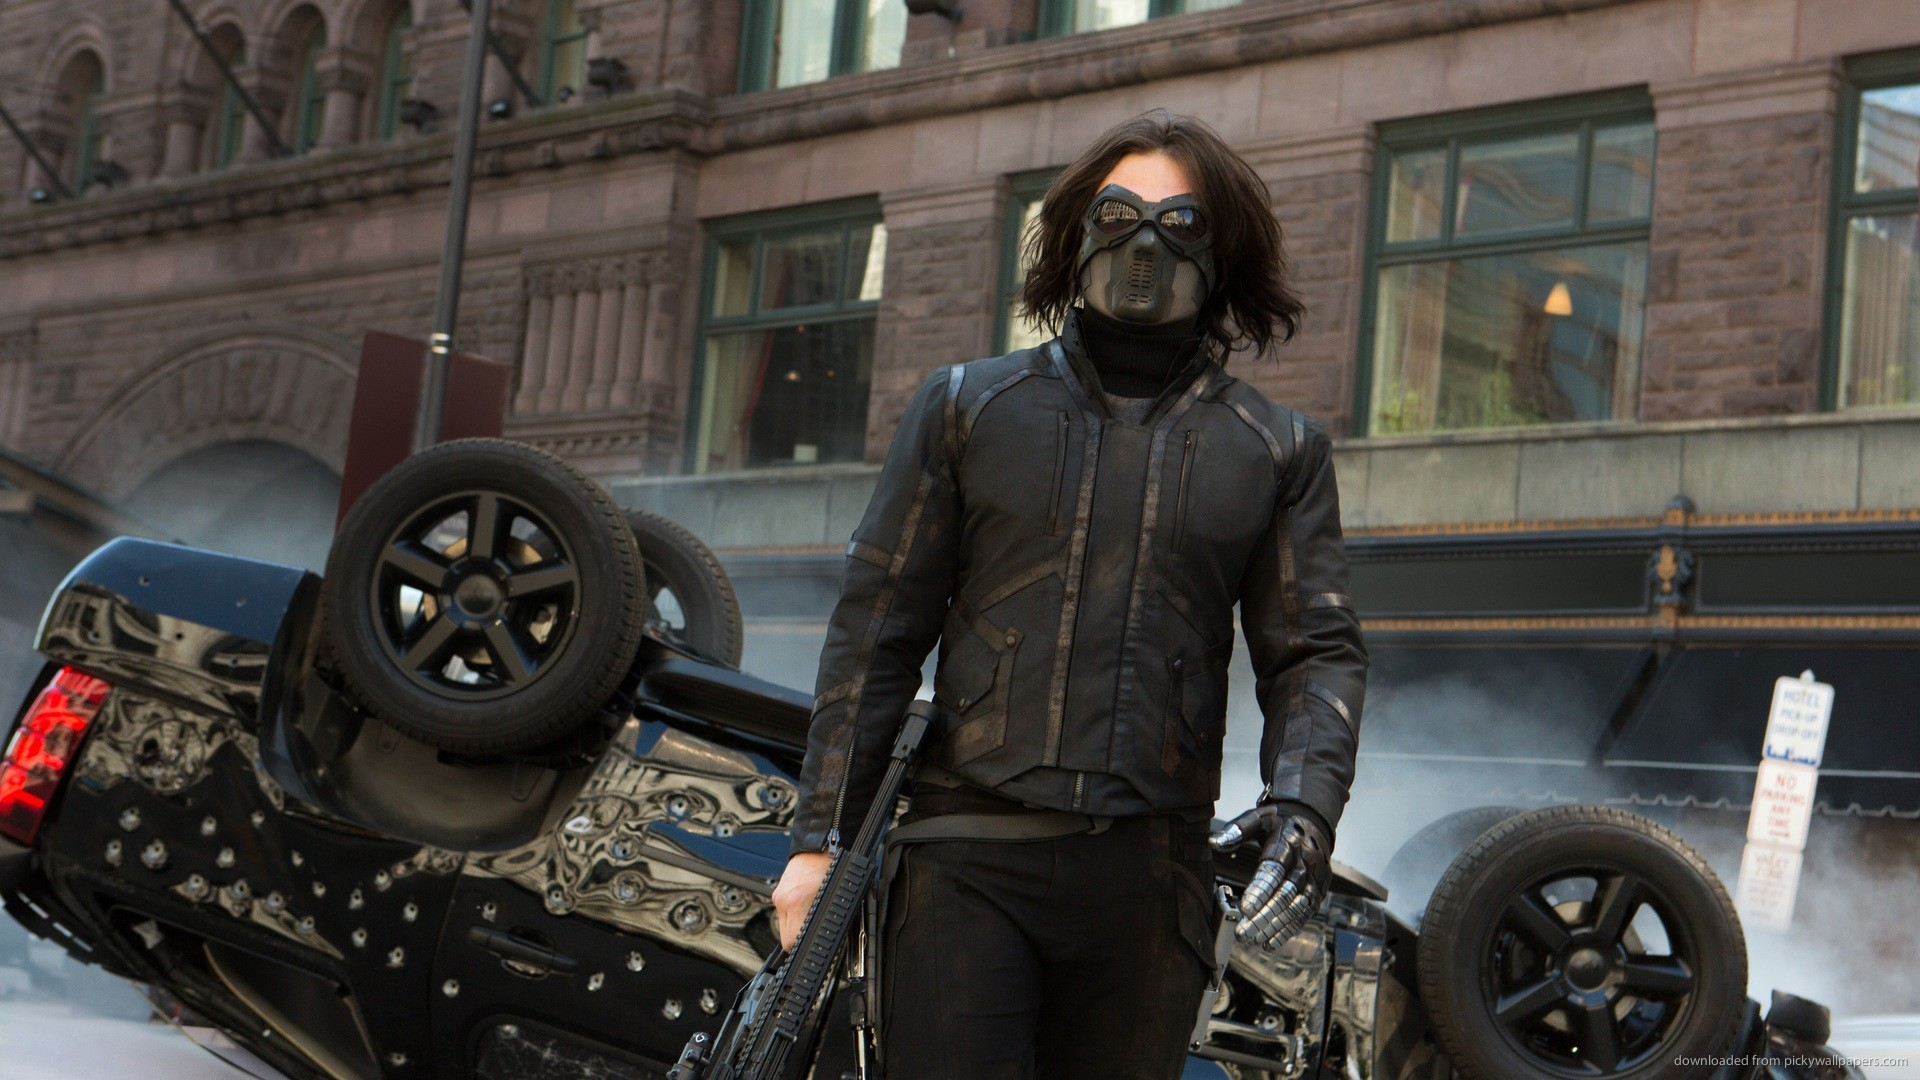 1920x1080 Winter Soldier Walking Away picture